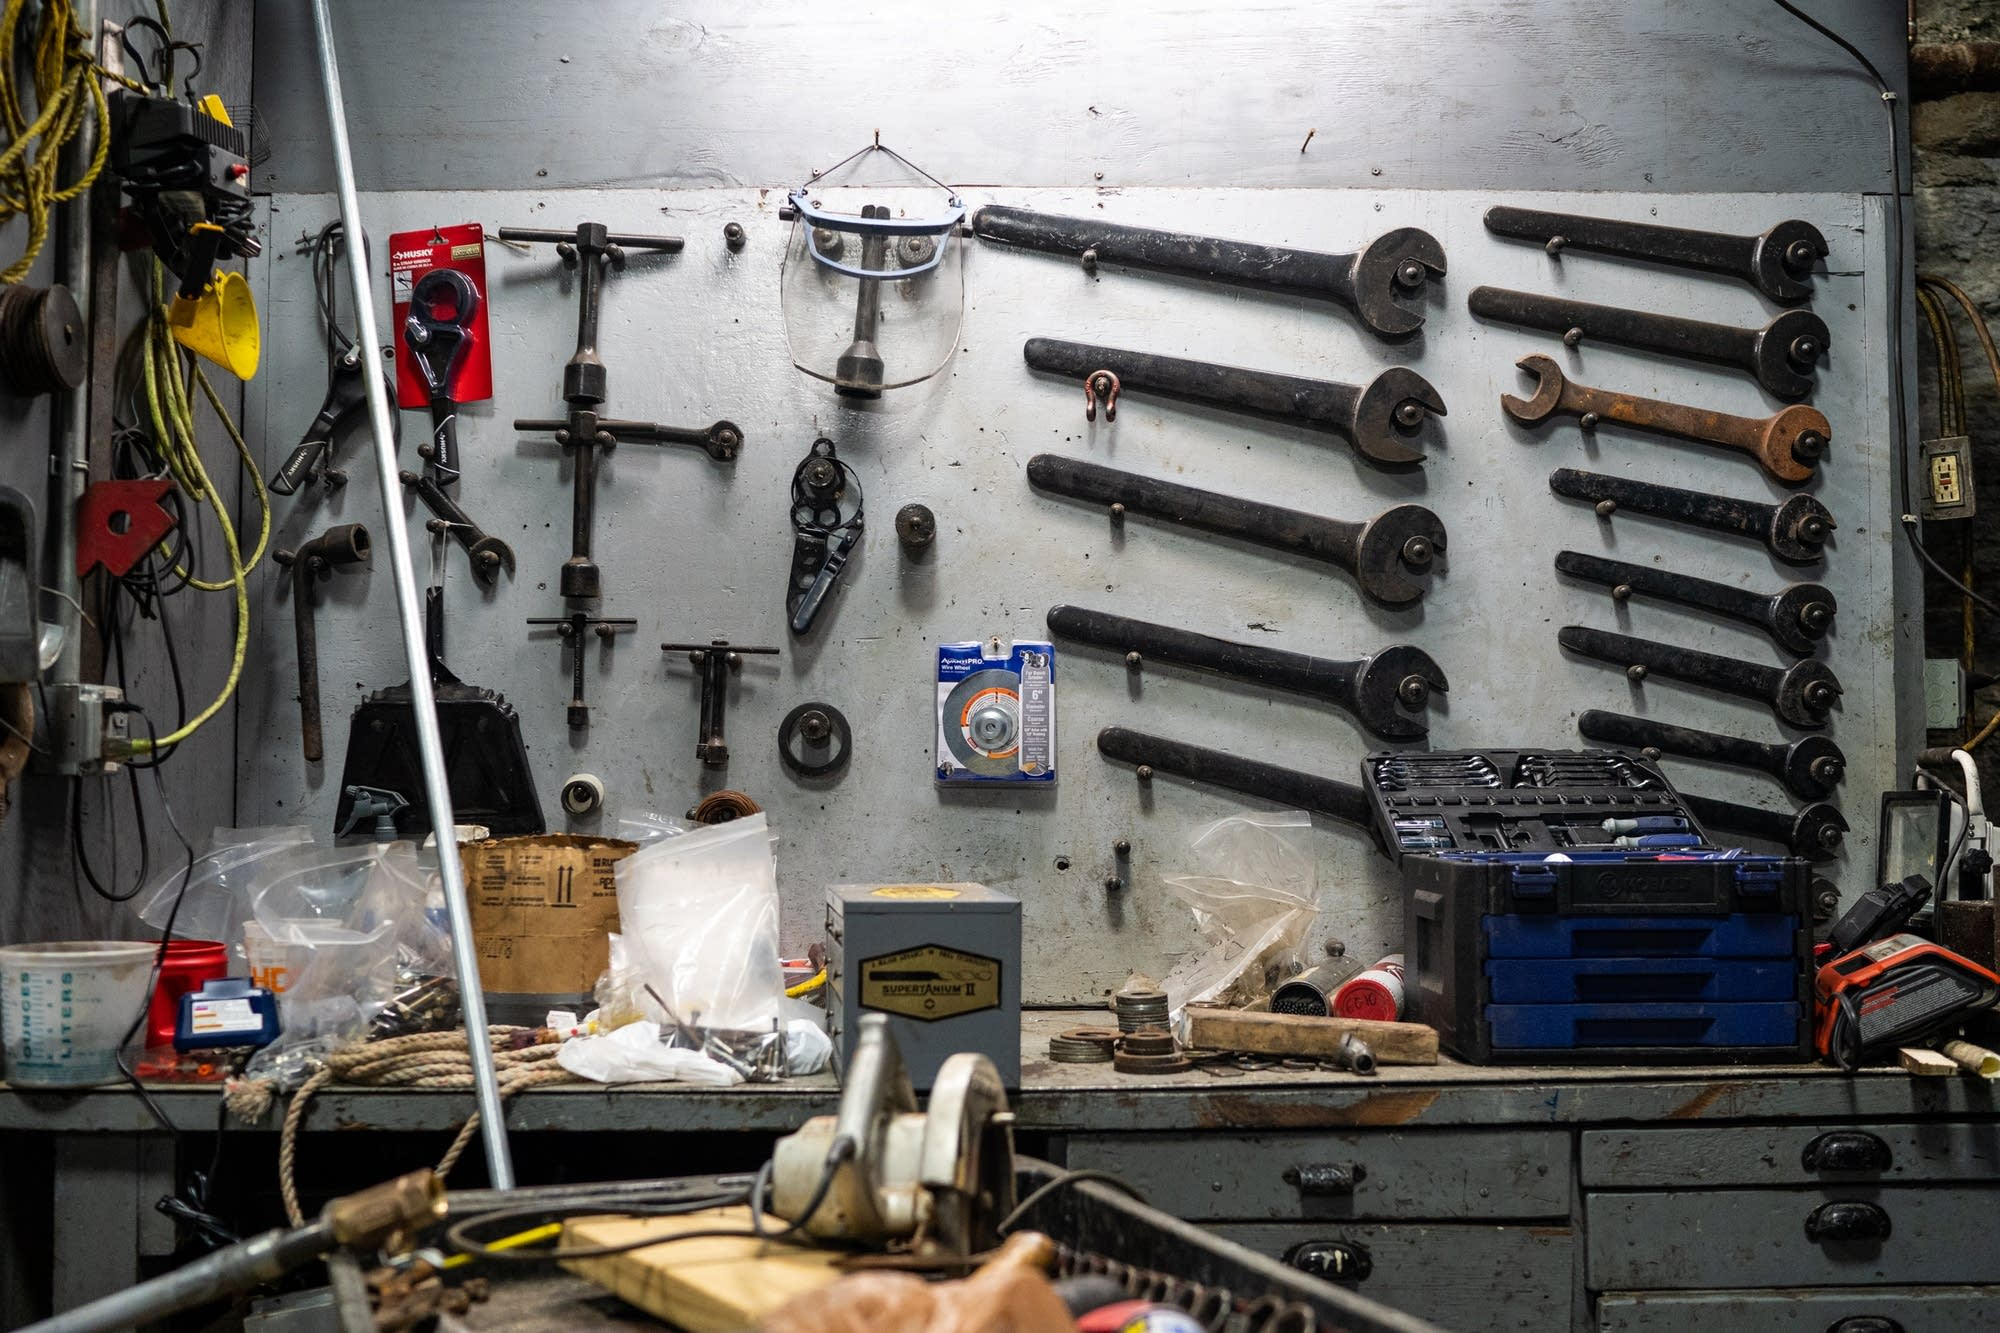 Wrenches and other tools used to maintain the turbines hang on the wall.